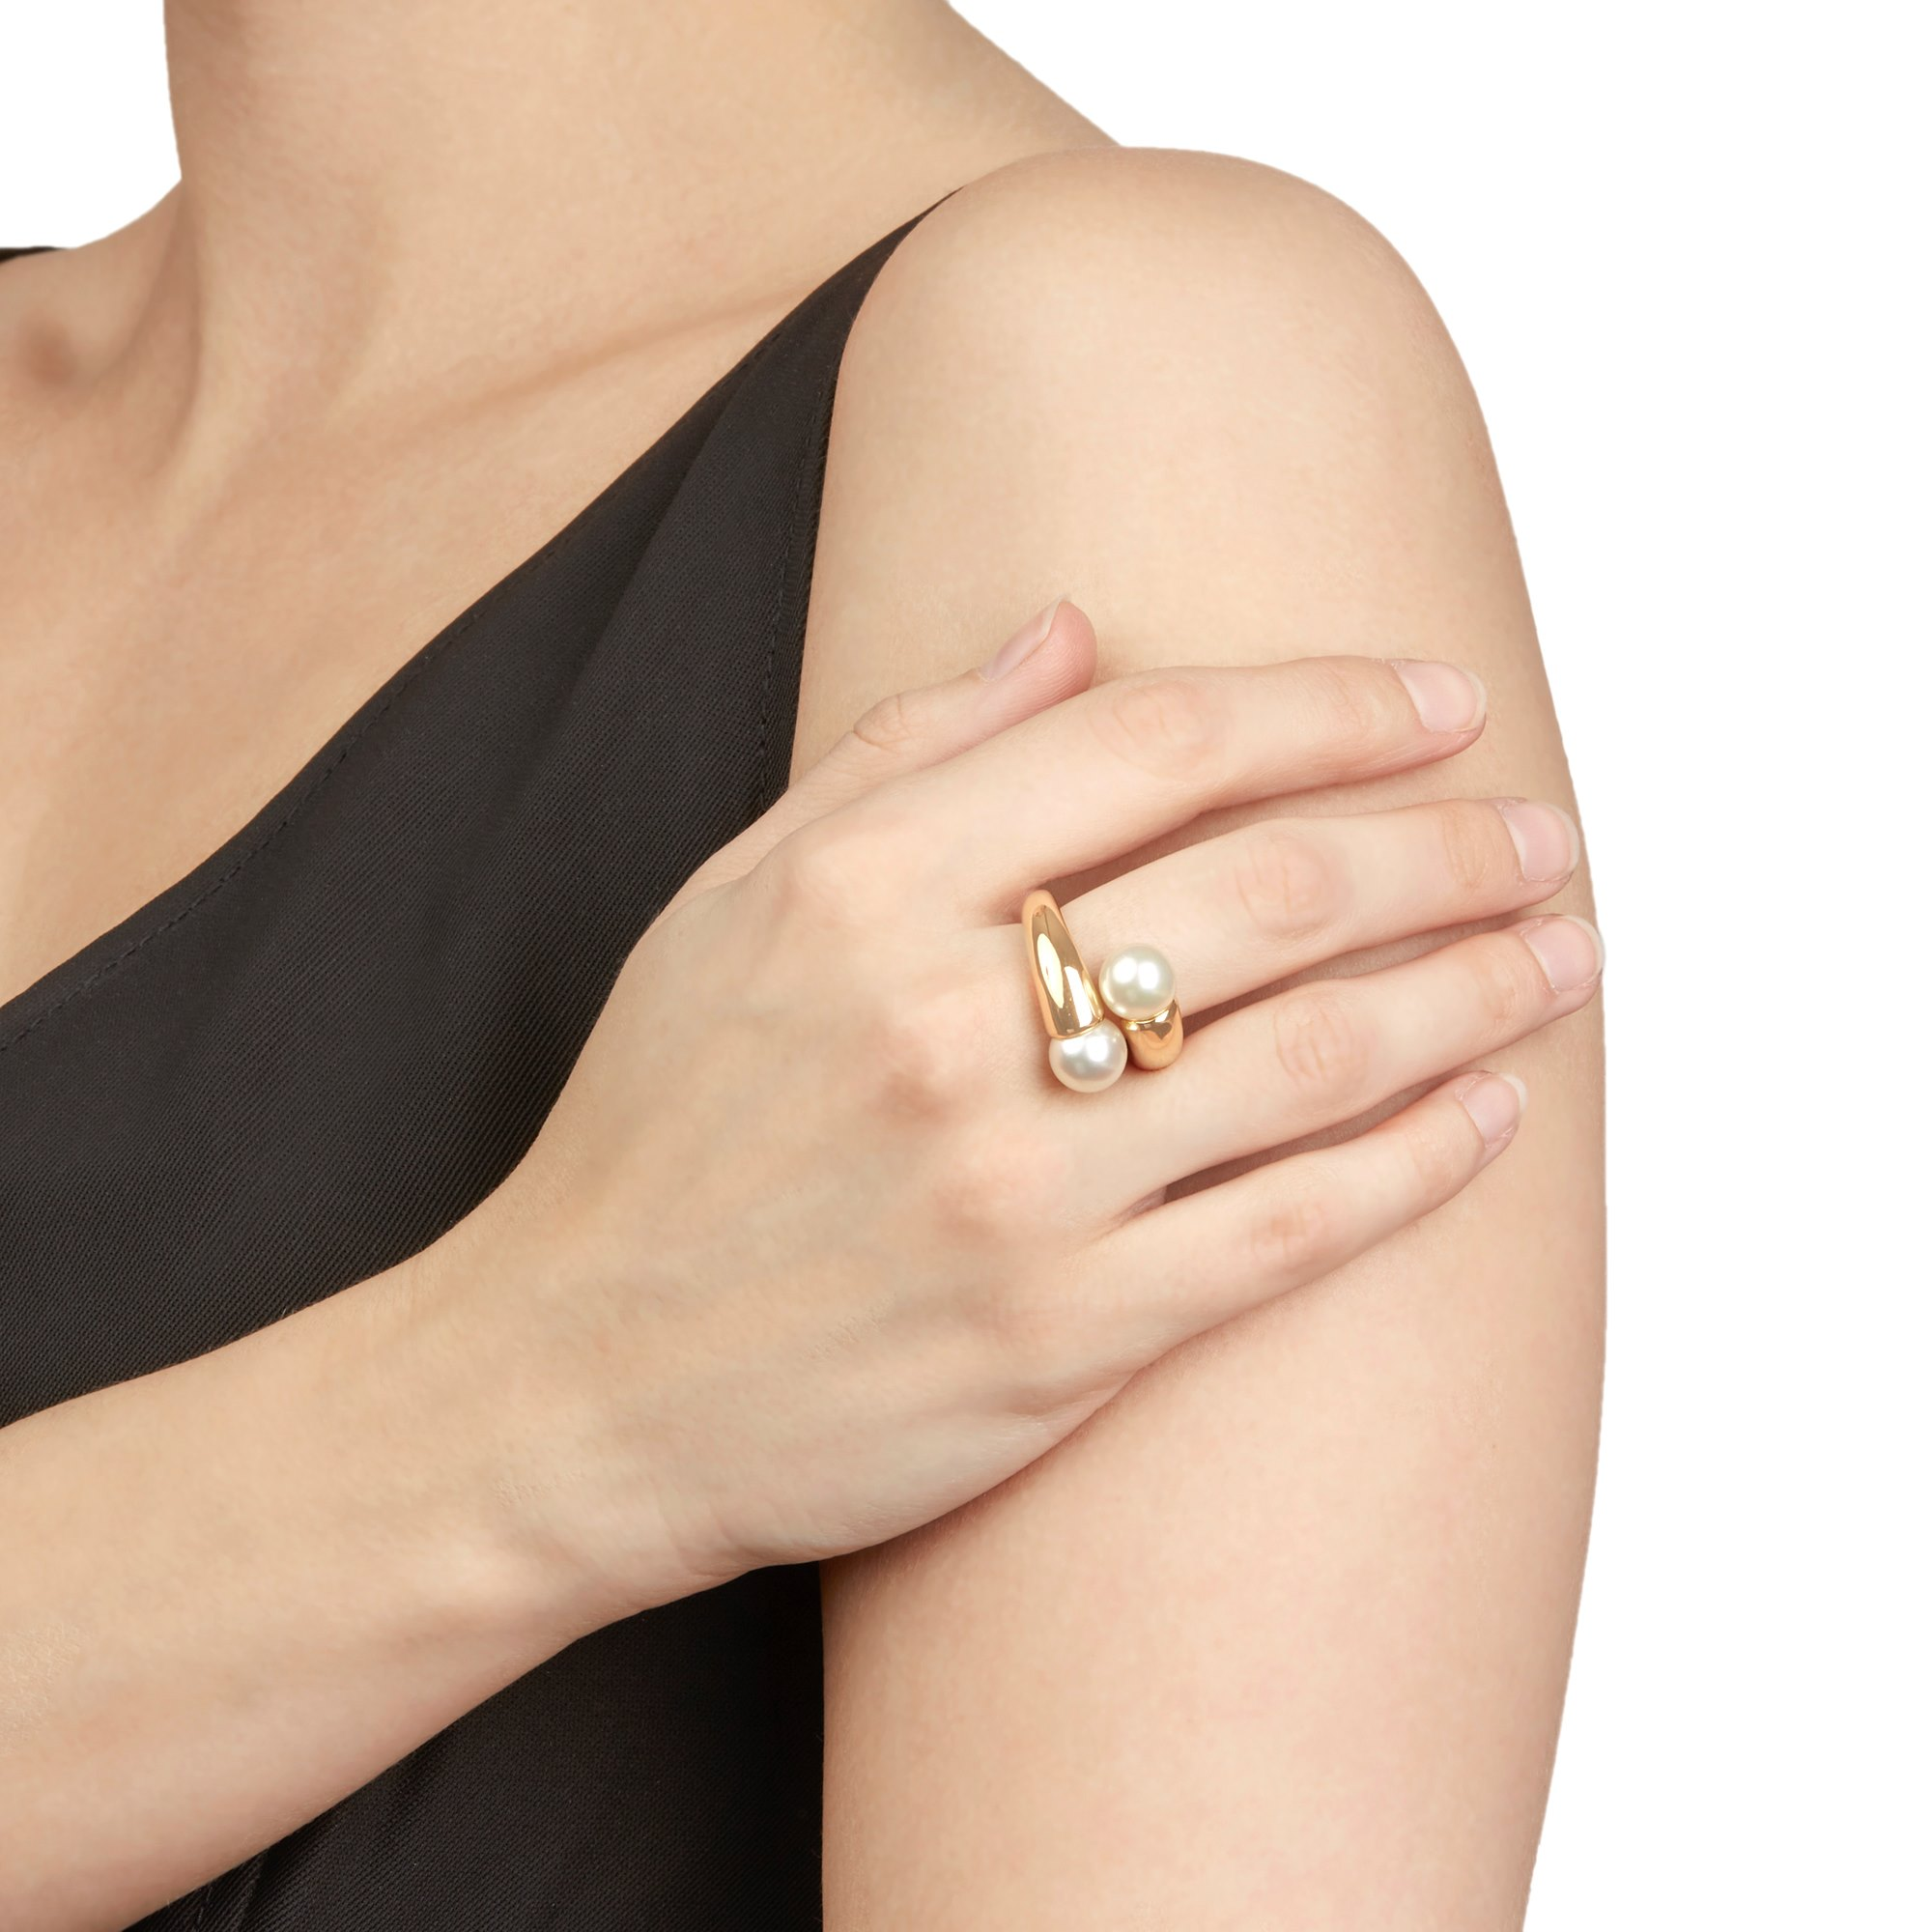 Cartier 18k Yellow Gold Double Pearl Ring